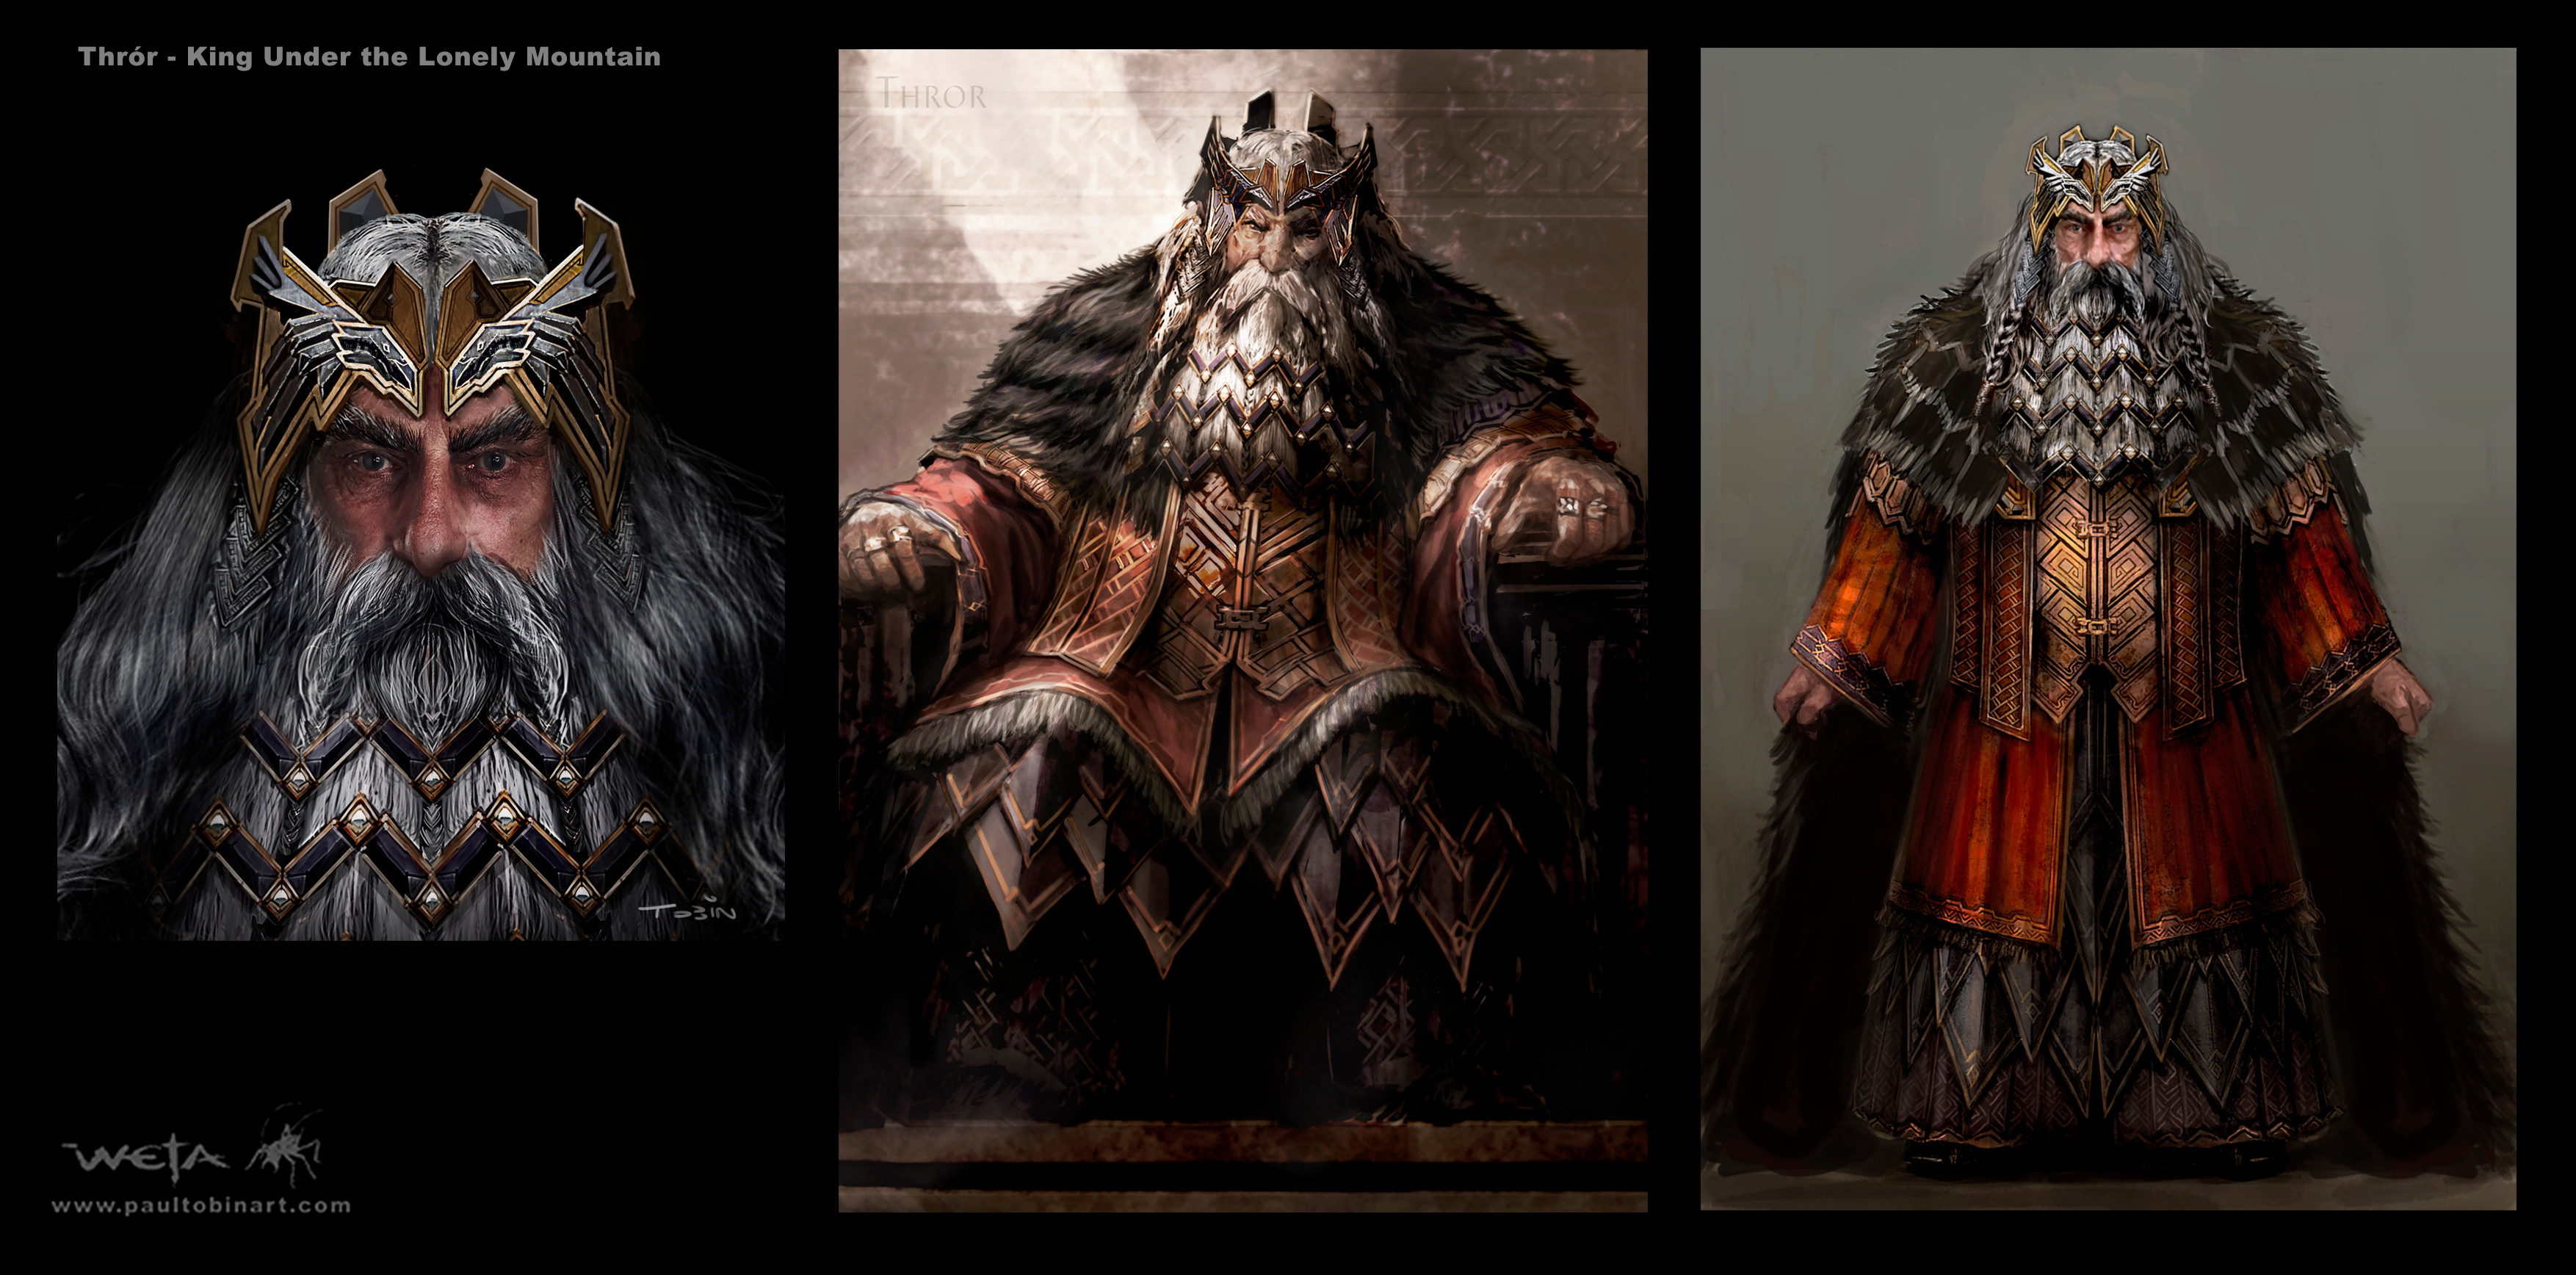 Concept art from The Hobbit. Image courtesy of Weta Workshop.